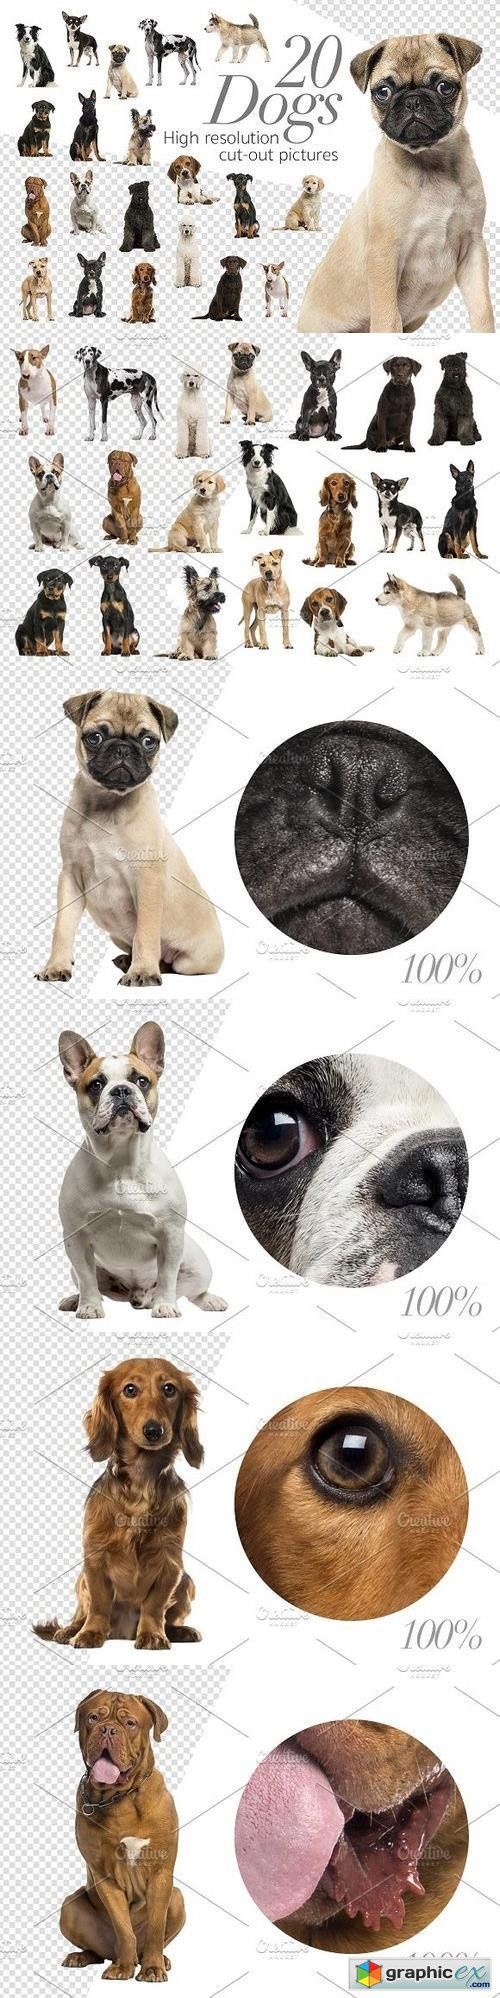 20 Dogs - Cut-out High Res Pictures